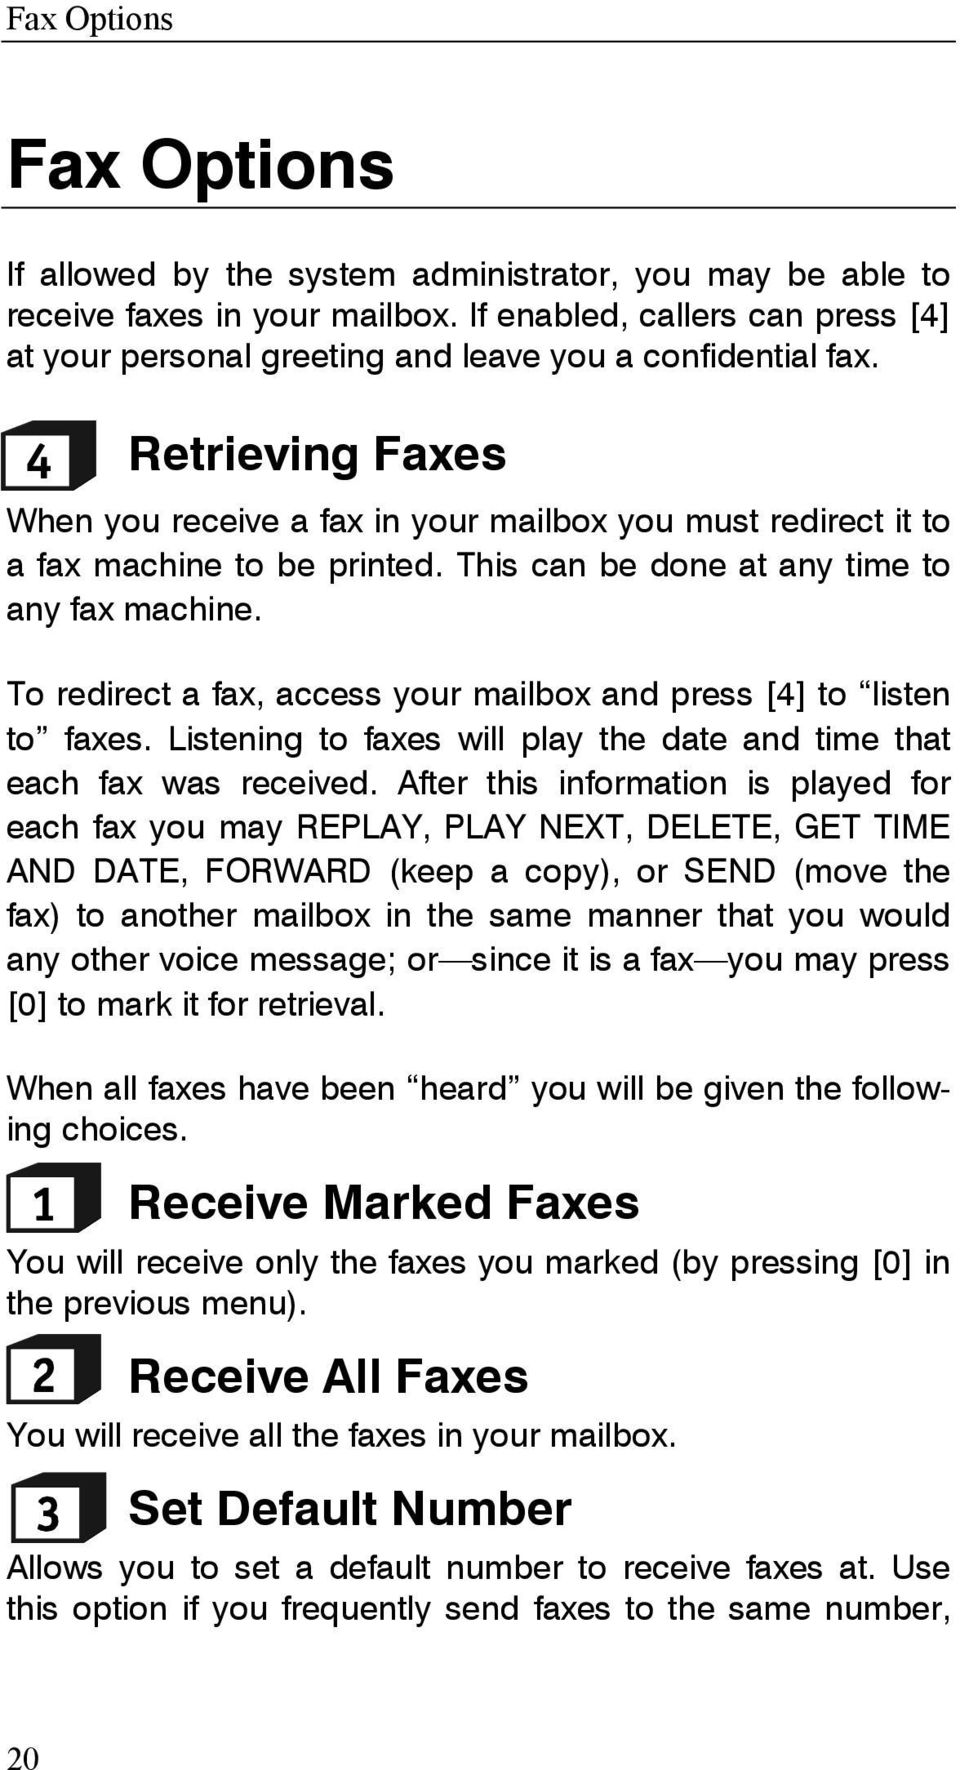 Retrieving Faxes When you receive a fax in your mailbox you must redirect it to a fax machine to be printed. This can be done at any time to any fax machine.